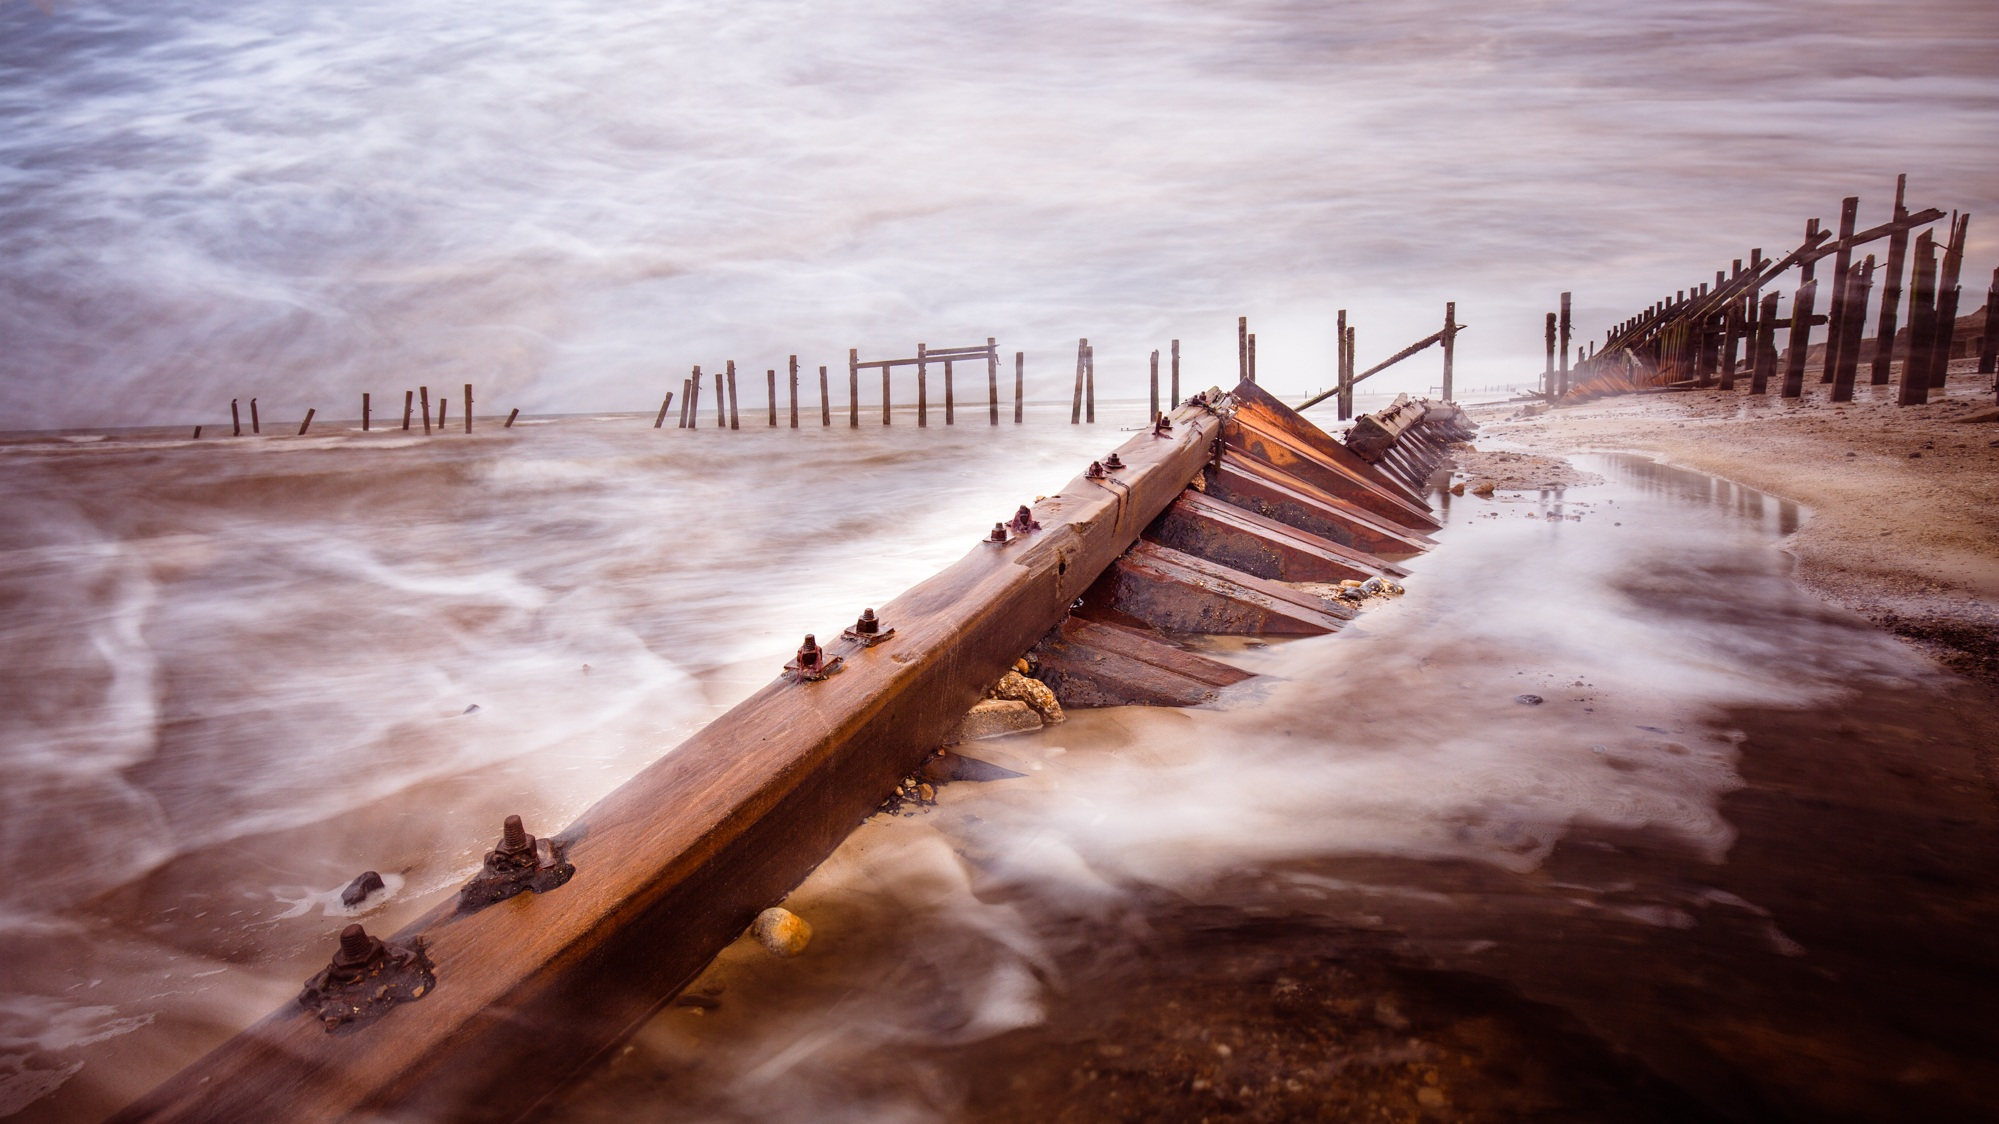 Happisburgh Defenses and Effects